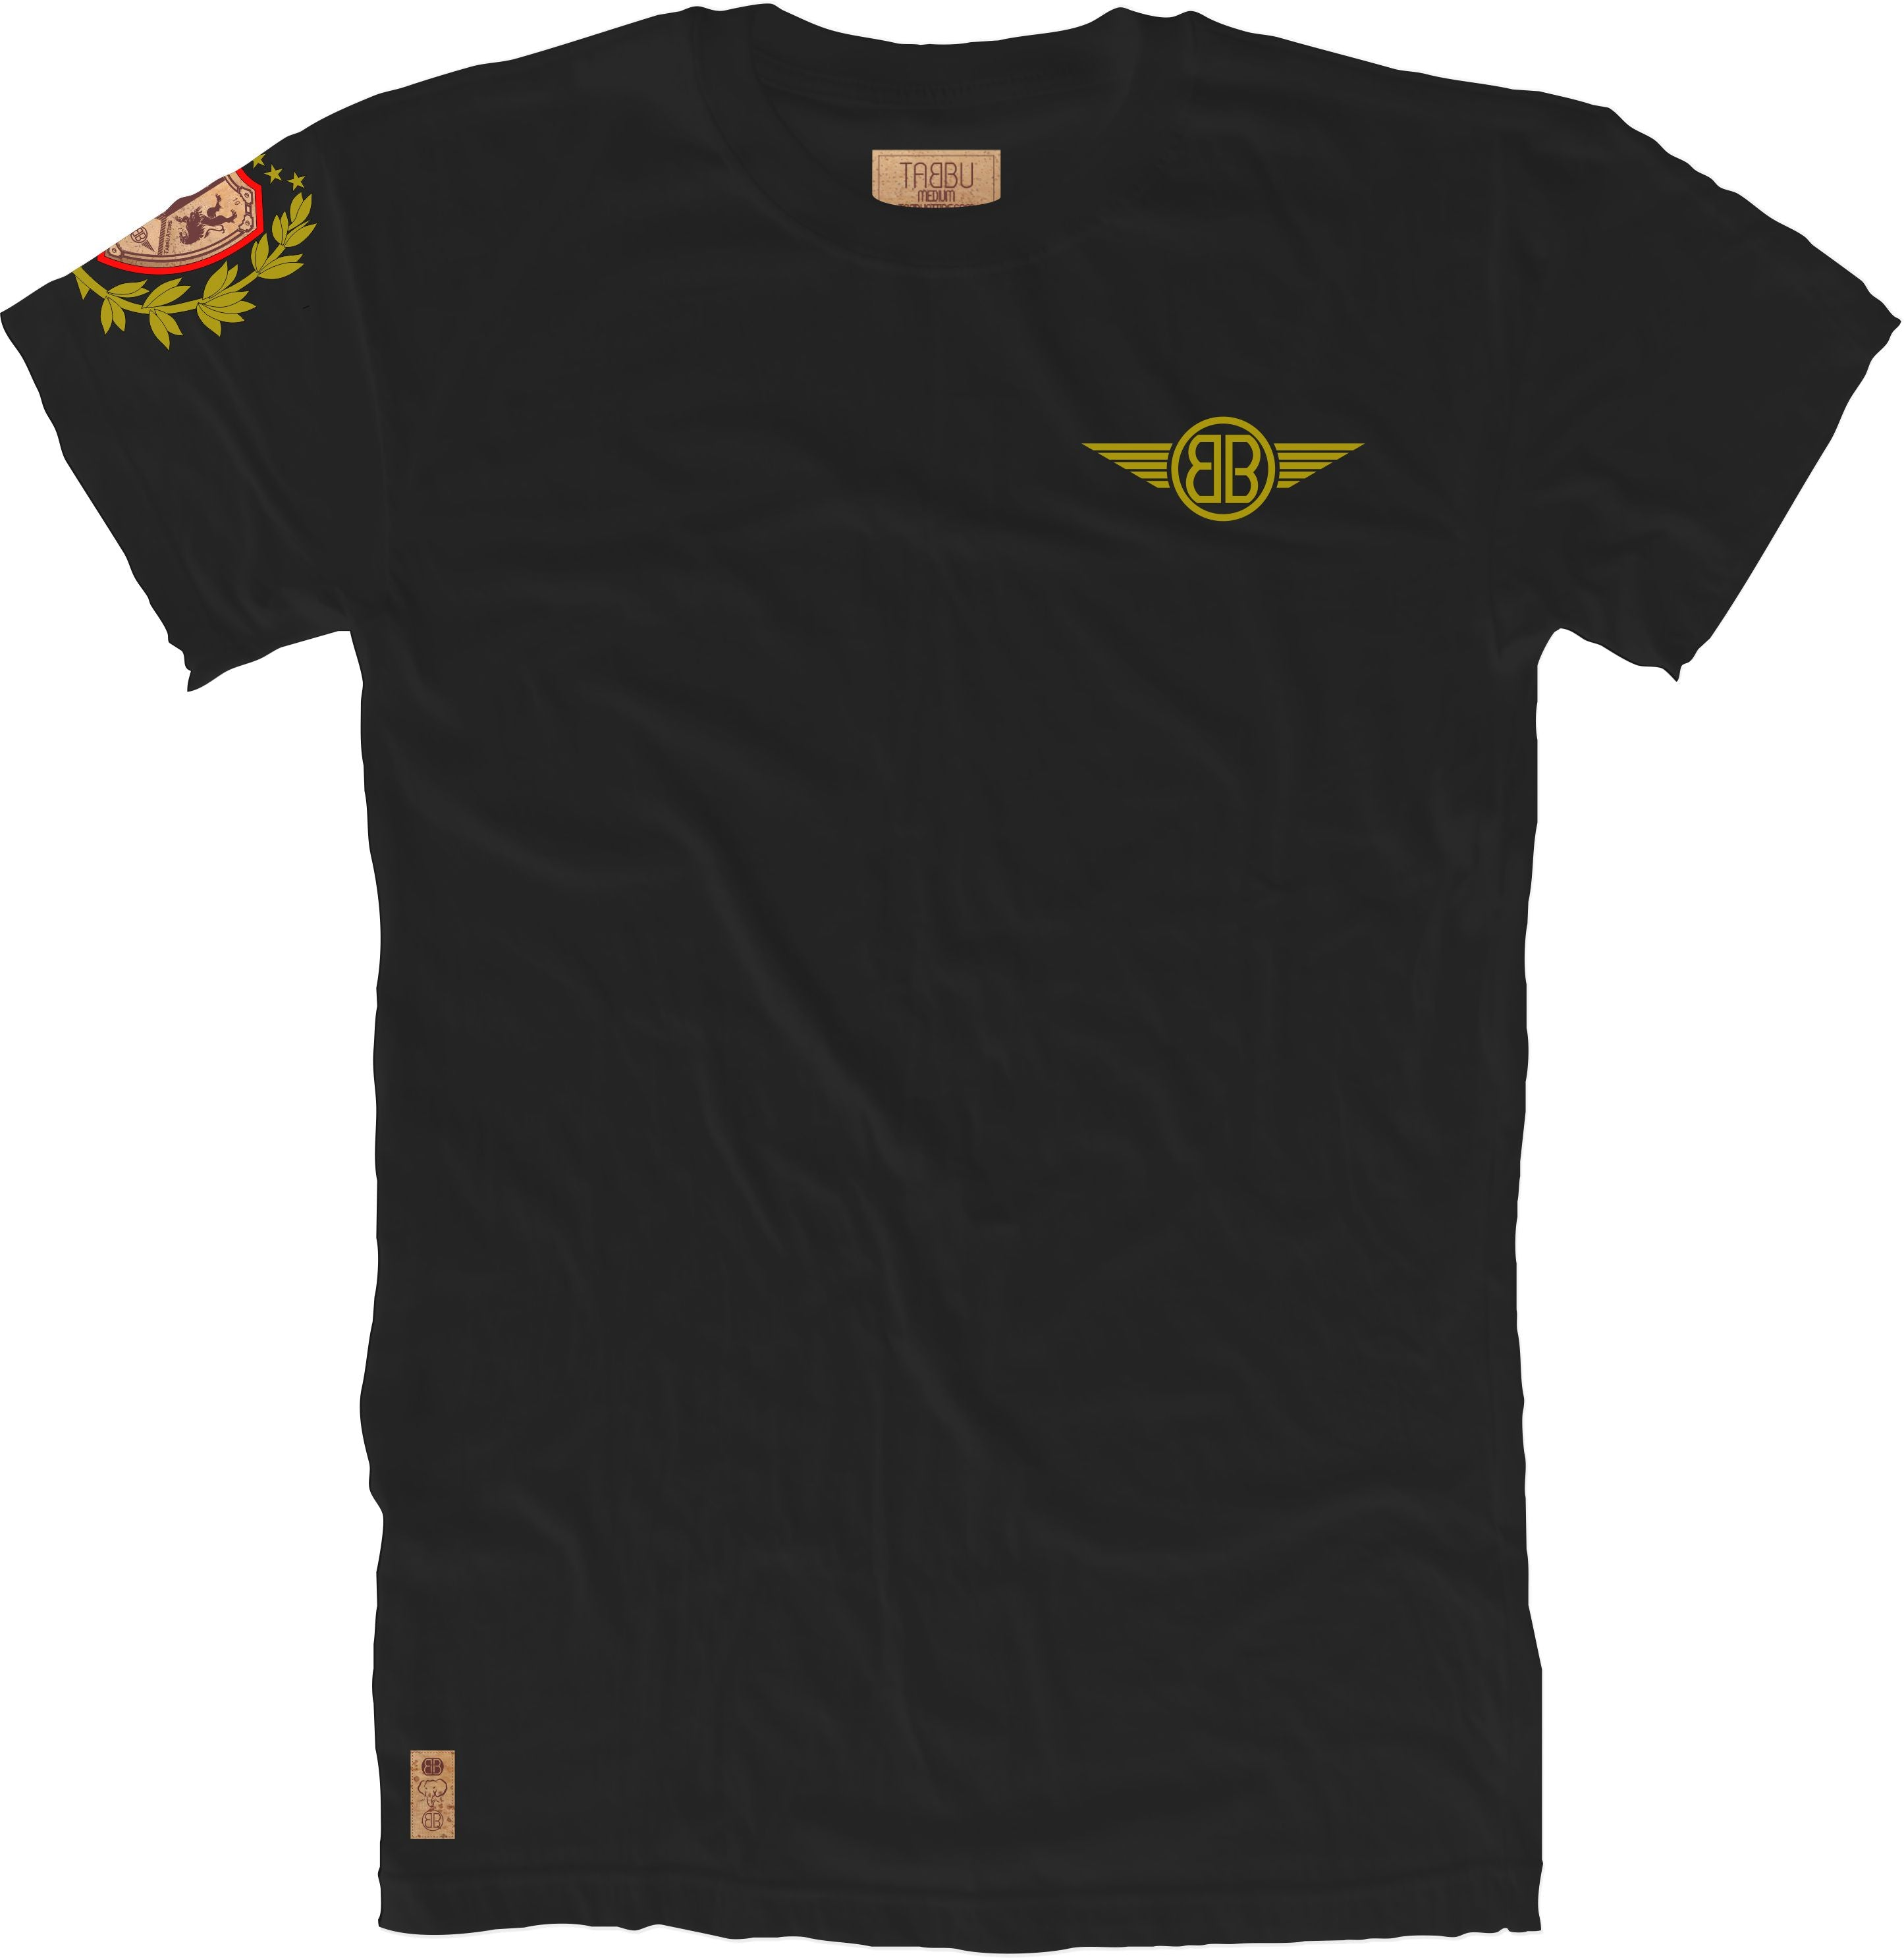 Lion Cork Shield Crewneck Tee in Black with Red/Gold Embroidery